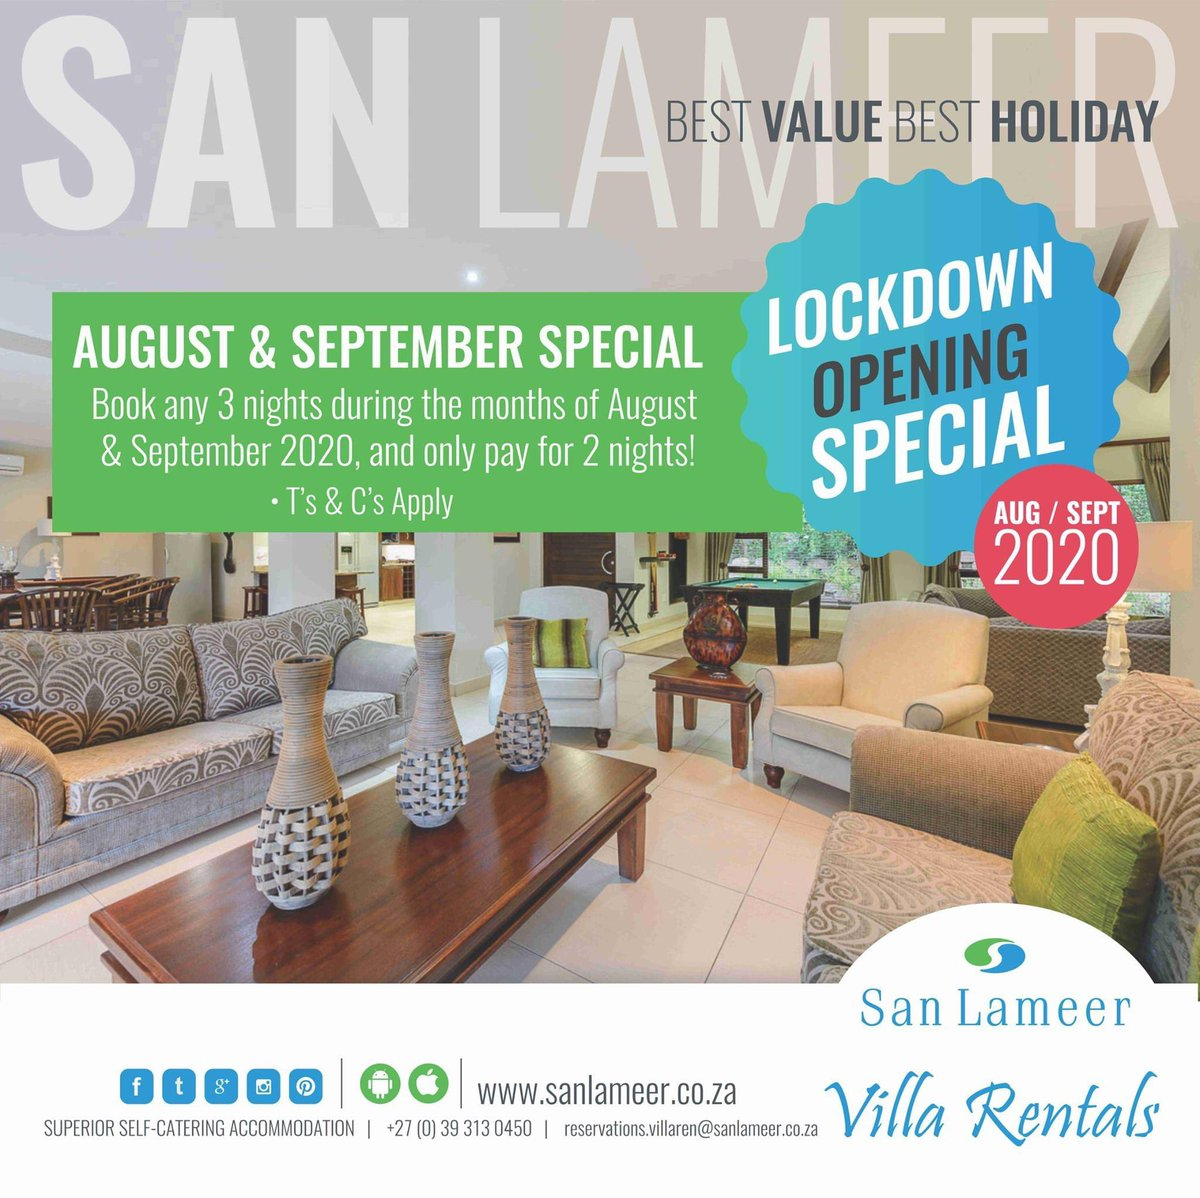 Did someone say intra-provincial leisure travel?   We're back! And very excited to have guests from KZN at our Villas again. Come and enjoy our 18 Hole Championship Golf Course & Mountain Bike Contact us:  Tel: +27 (0) 39 313 0450 Email: reservations.villaren@sanlameer.co.za pic.twitter.com/w99vblx3SD